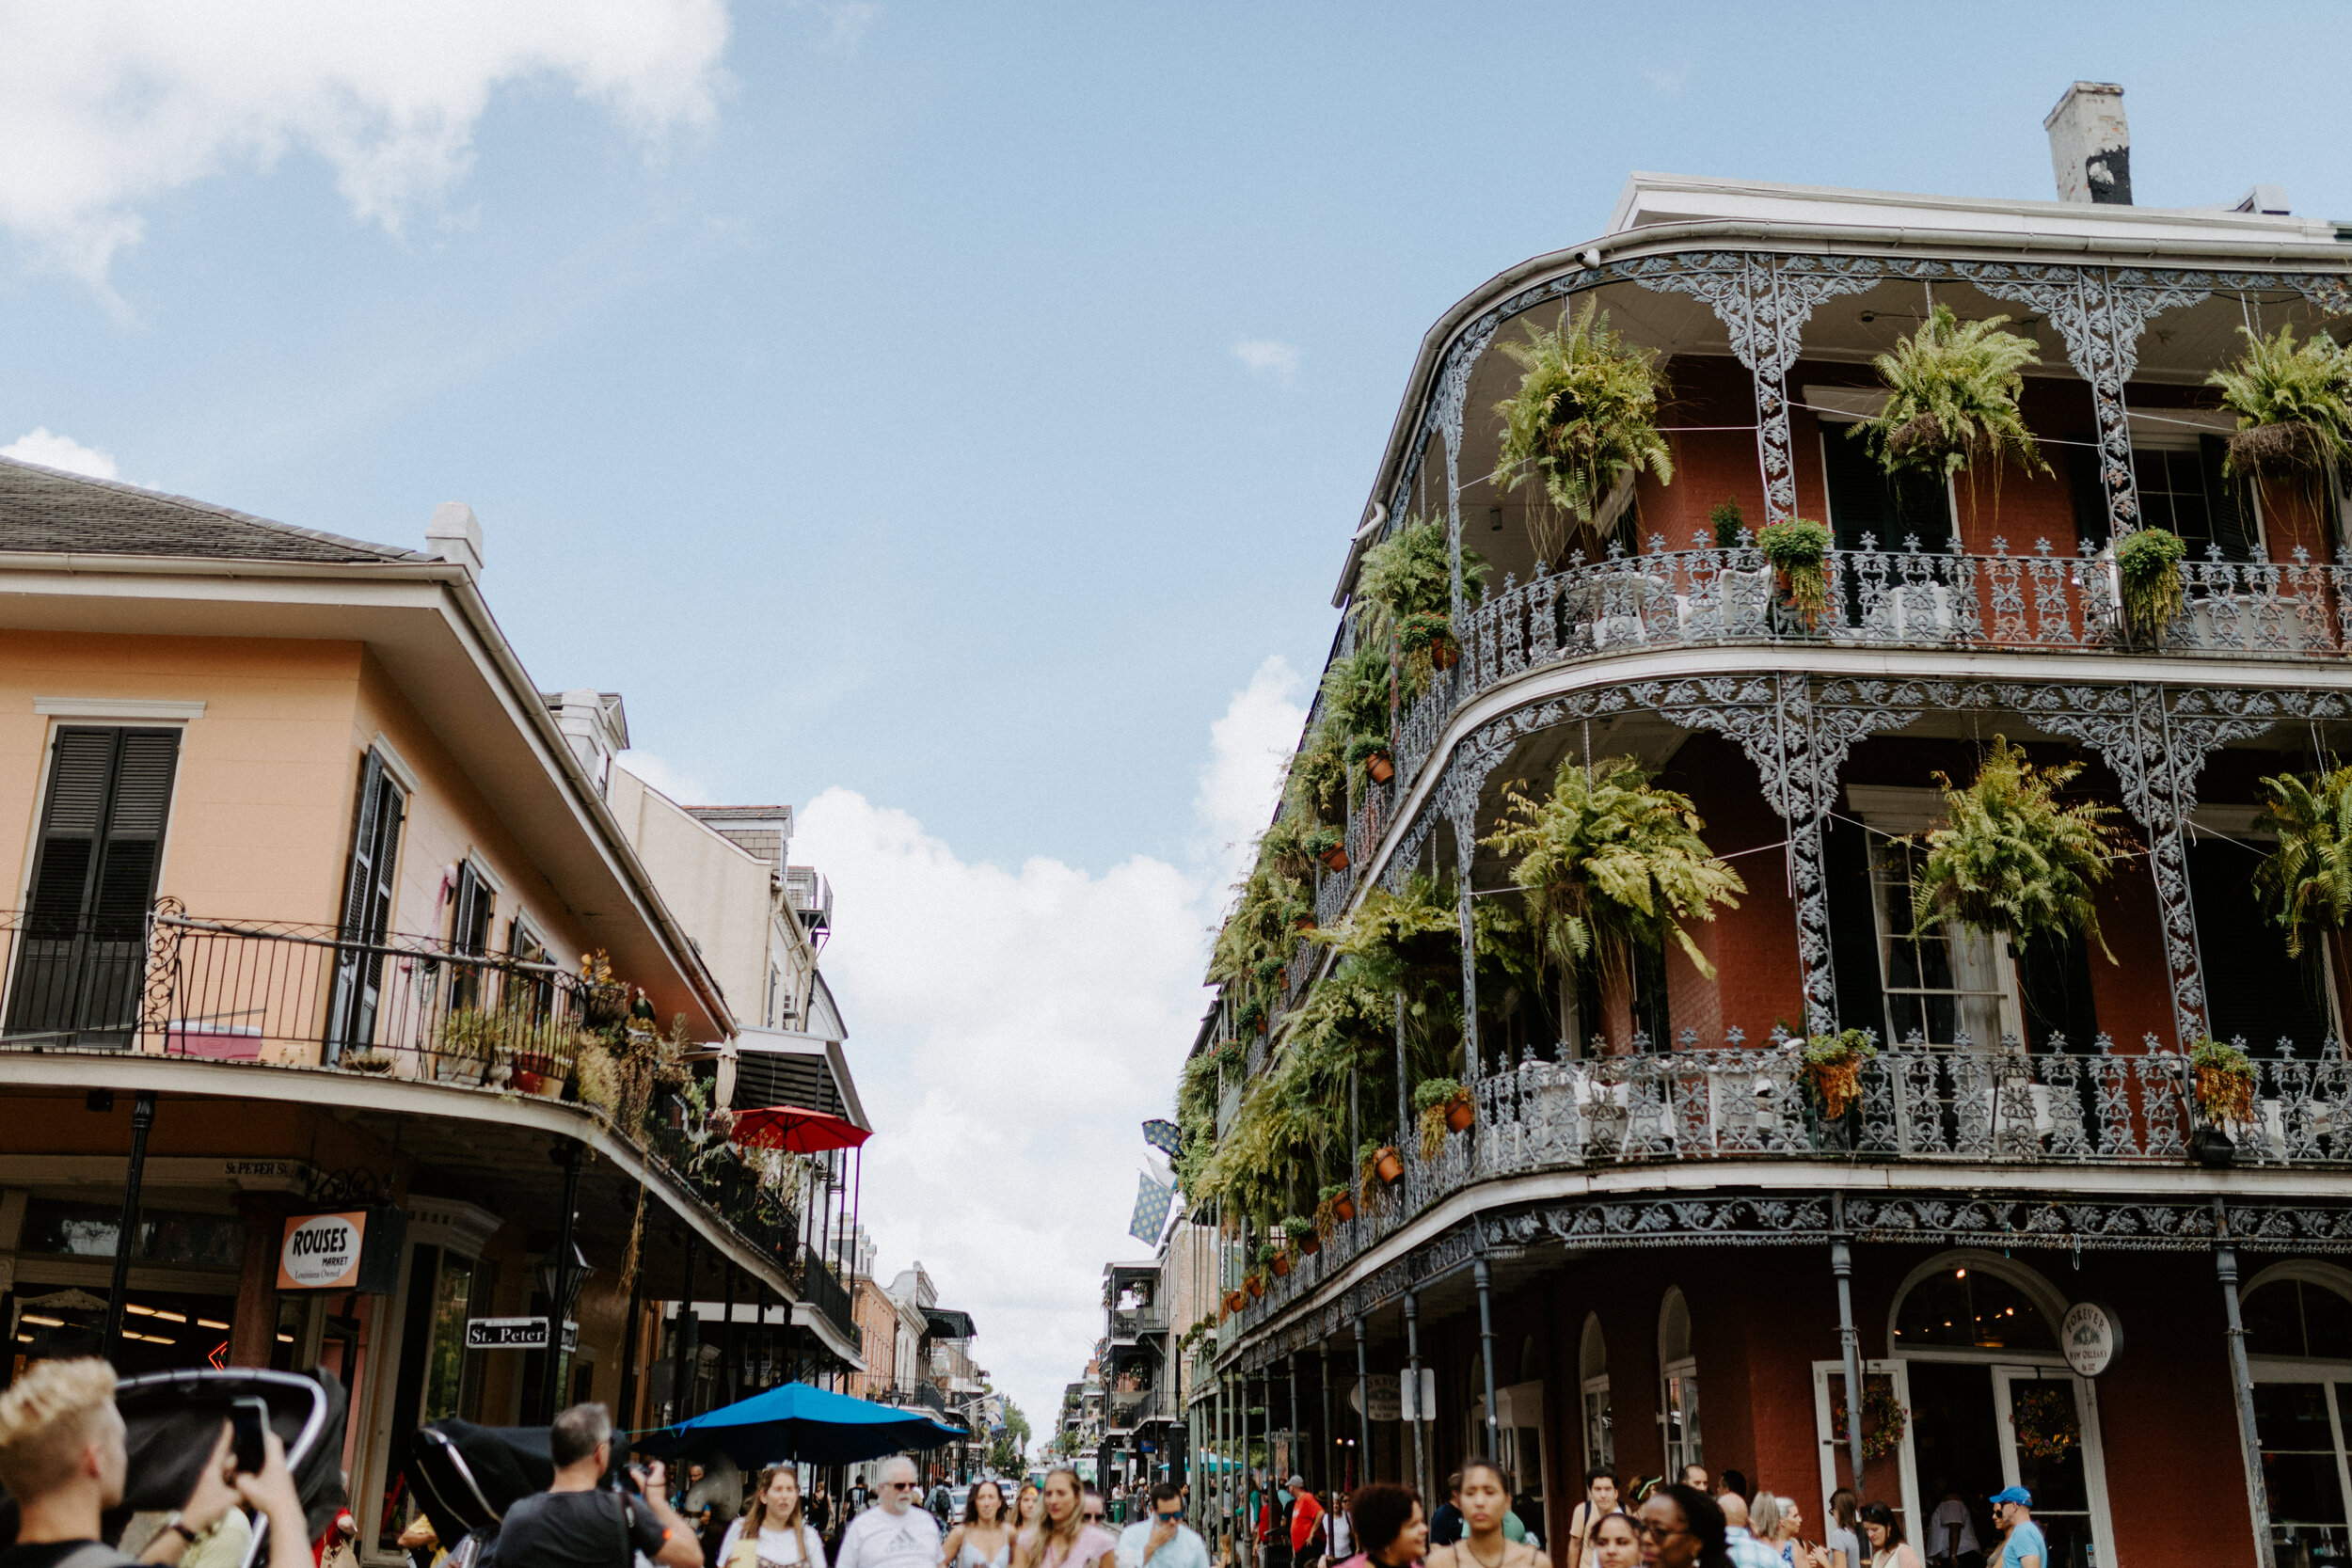 Casual view of an intersection of the French Quarter. Taking in the sights, admiring the greenery hanging from each balcony.